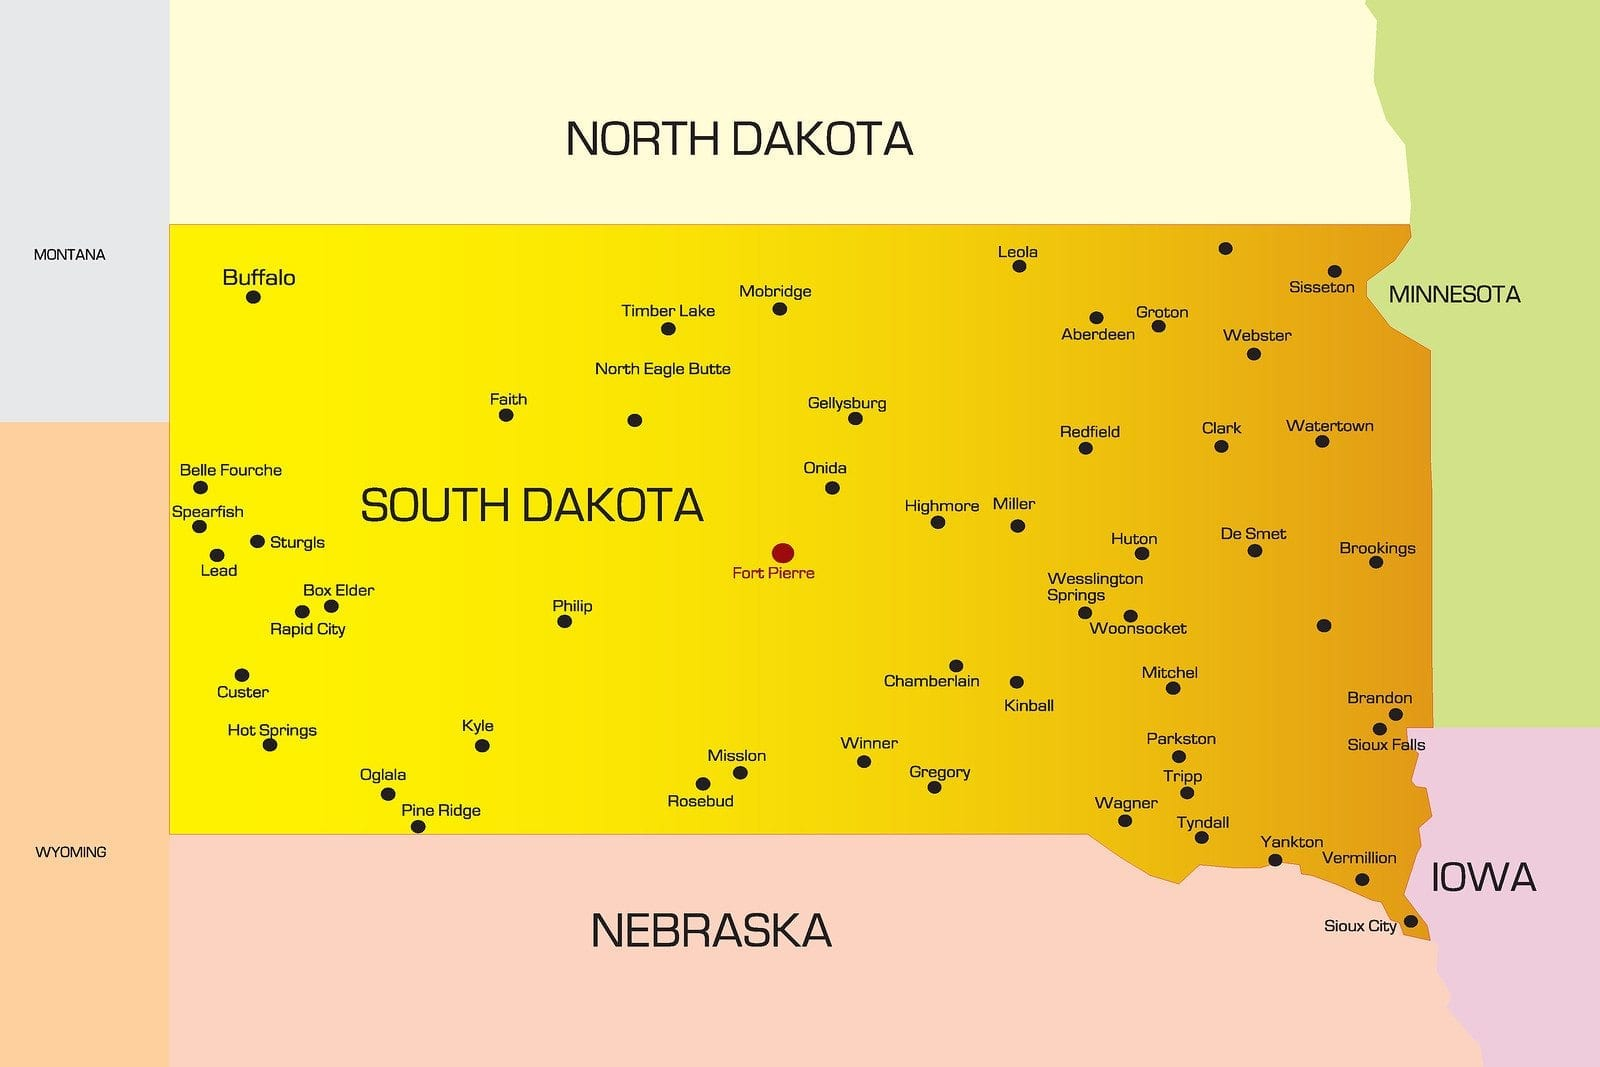 South dakota lpn requirements and training programs few careers are as rewarding or a challenging as a career in nursing nurses today must utilize the available medical technology for patient care xflitez Gallery